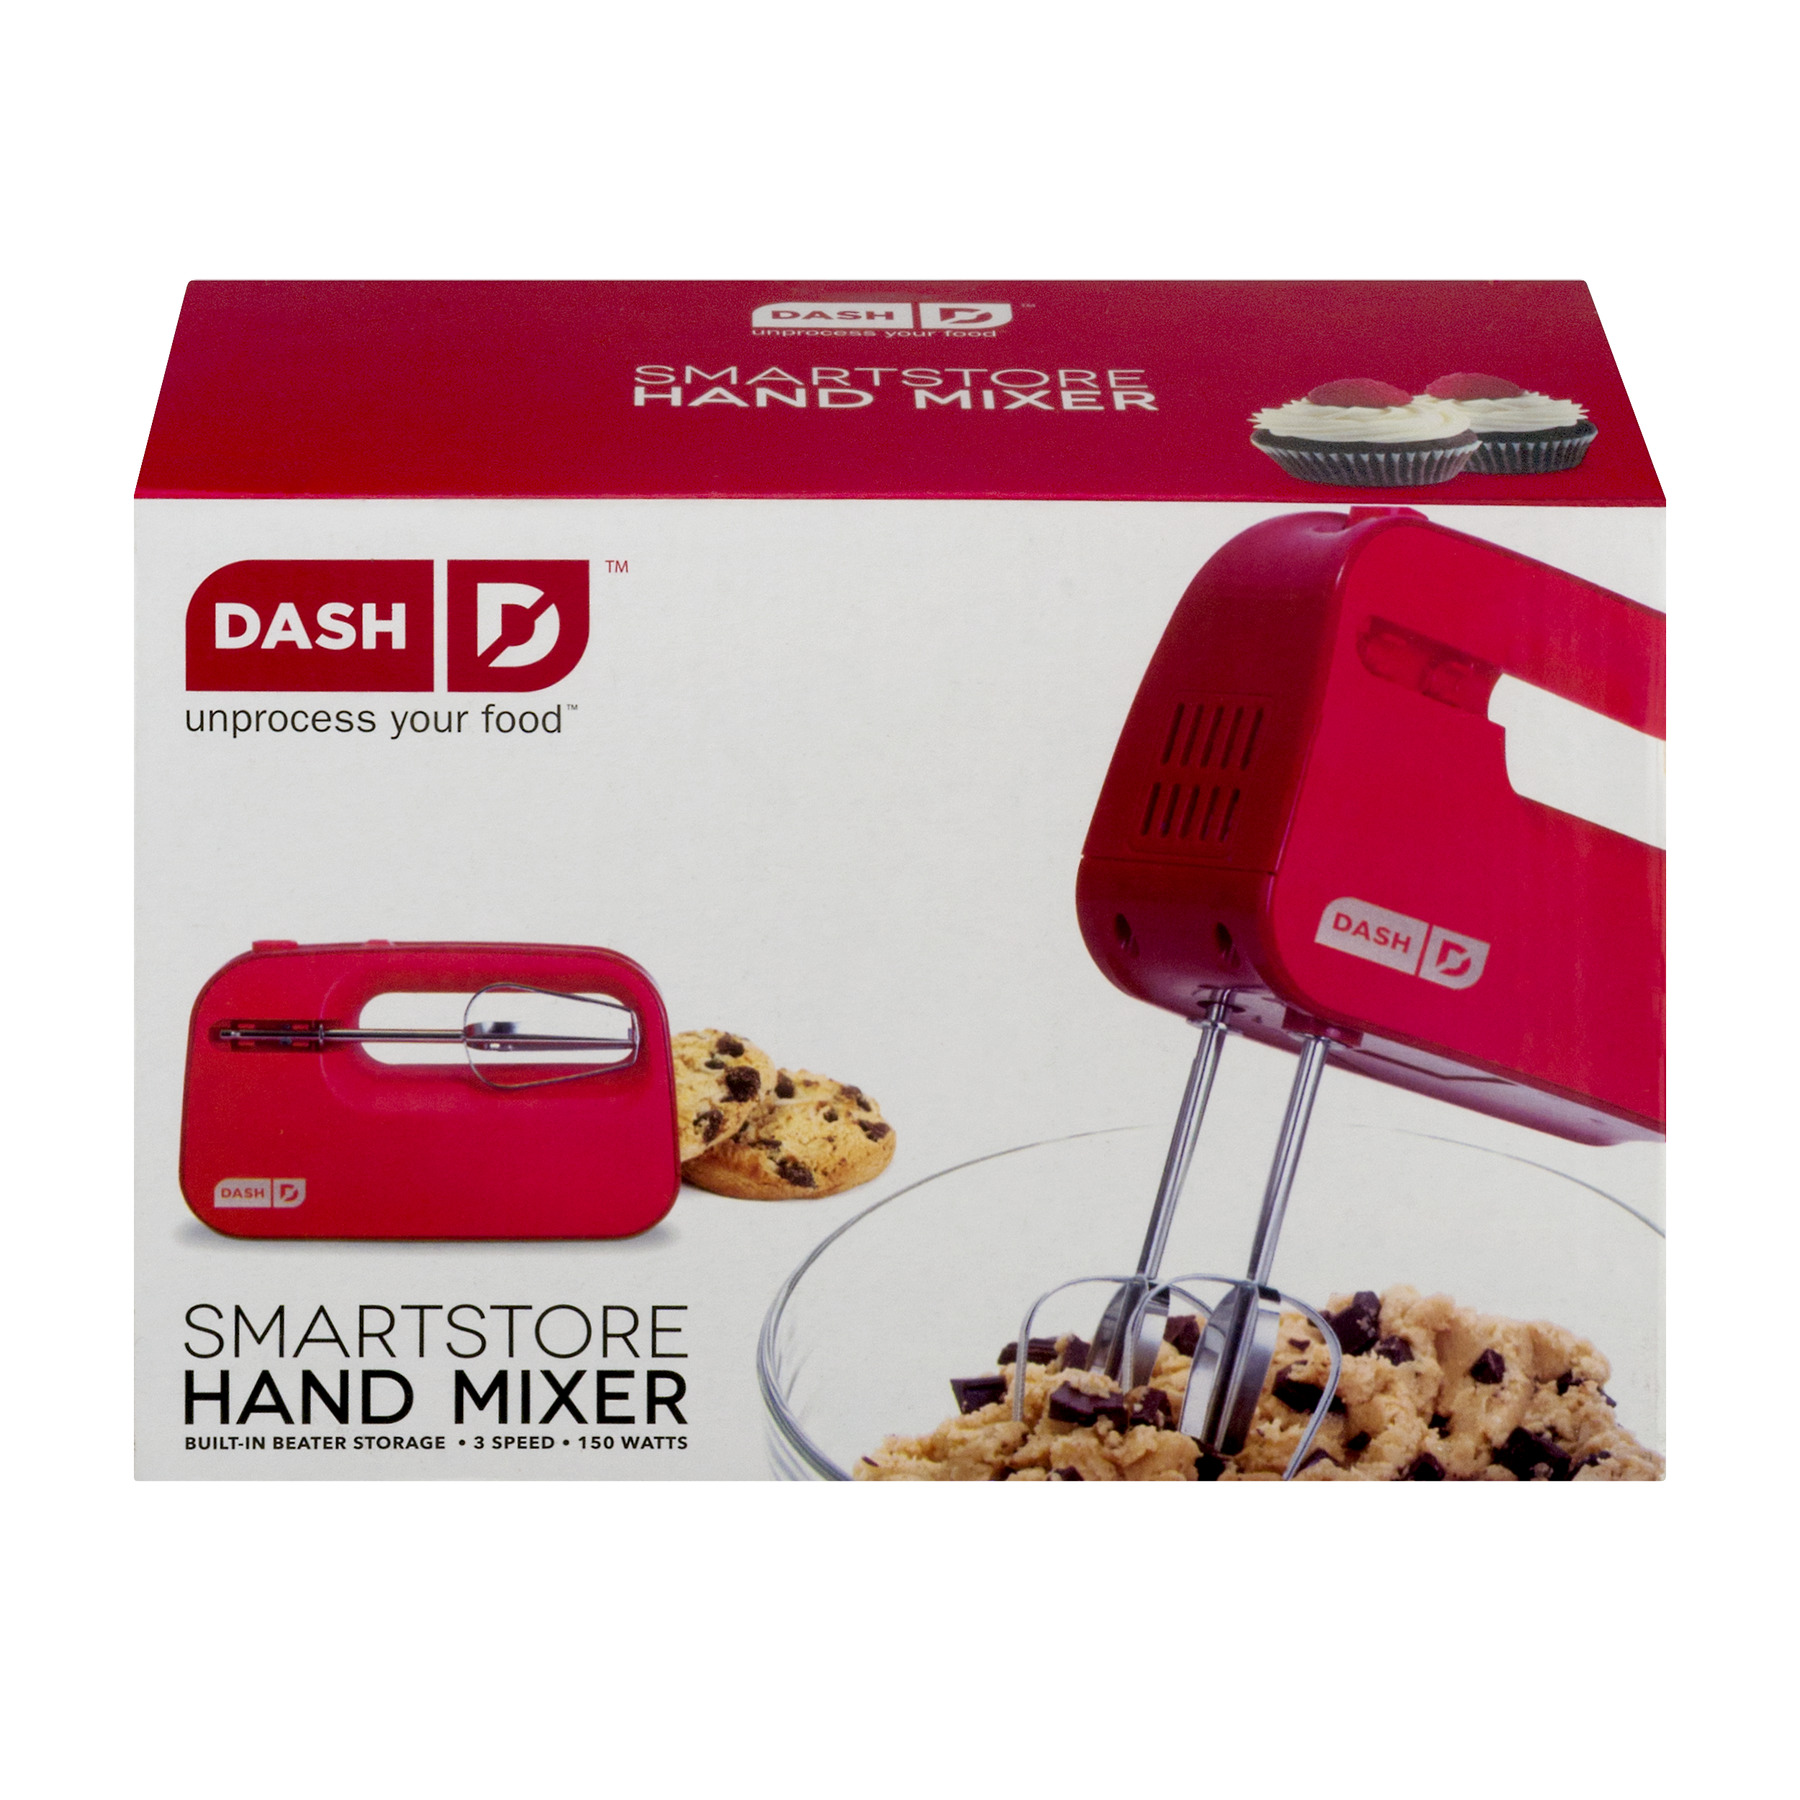 Dash D Smart Store Hand MIxer Red, 1.0 CT